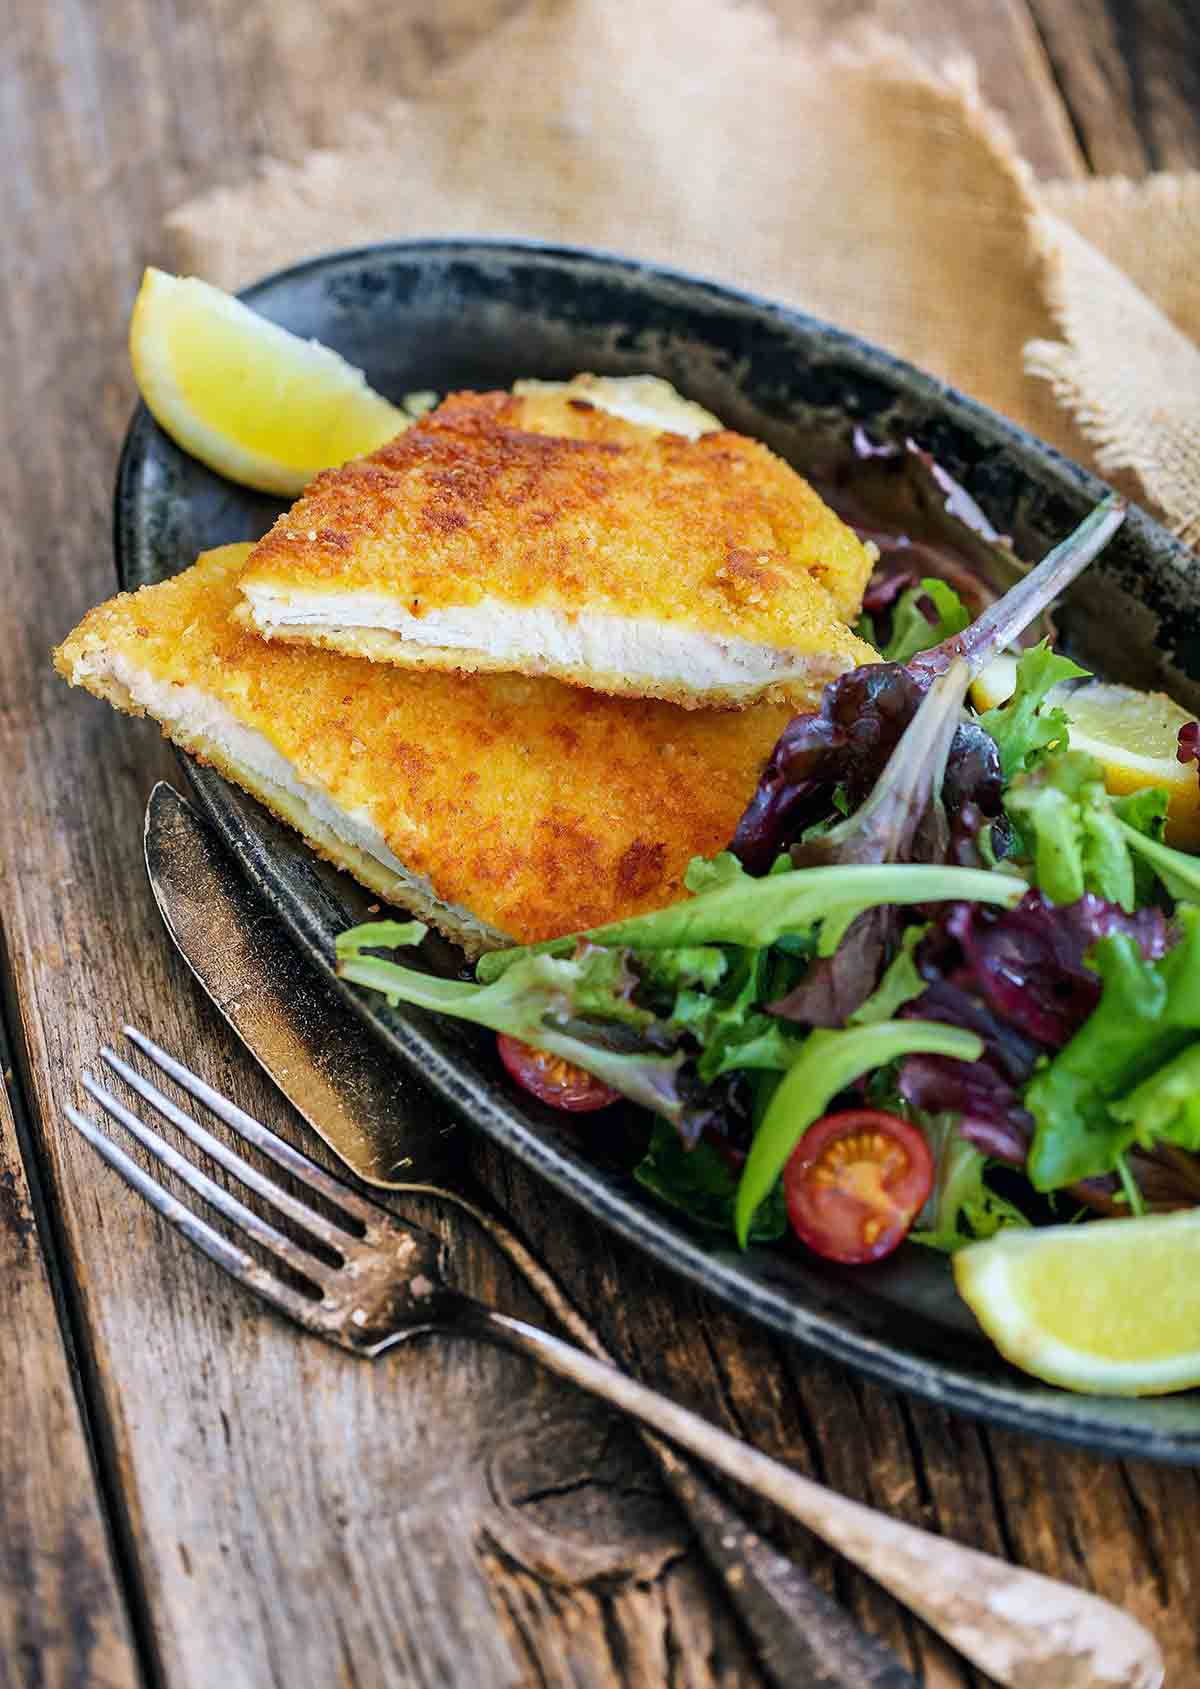 A halved pork Milanese cutlet on a grey oval plate with a lemon wedge and mixed spring greens.